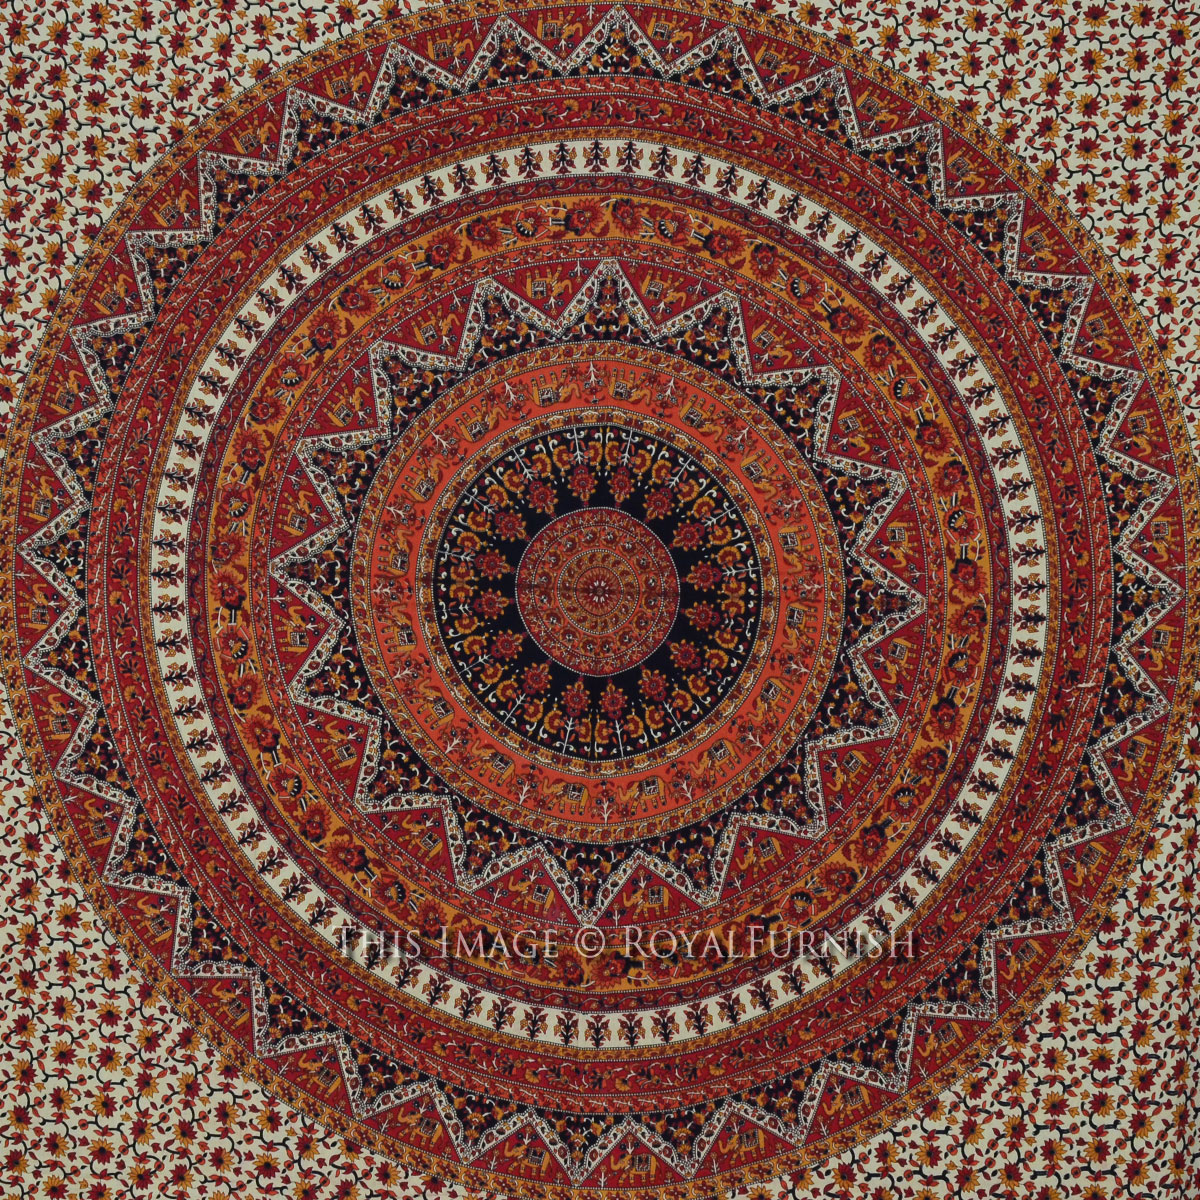 Queen Red Psychedelic Bohemian Hippie Mandala Tapestry